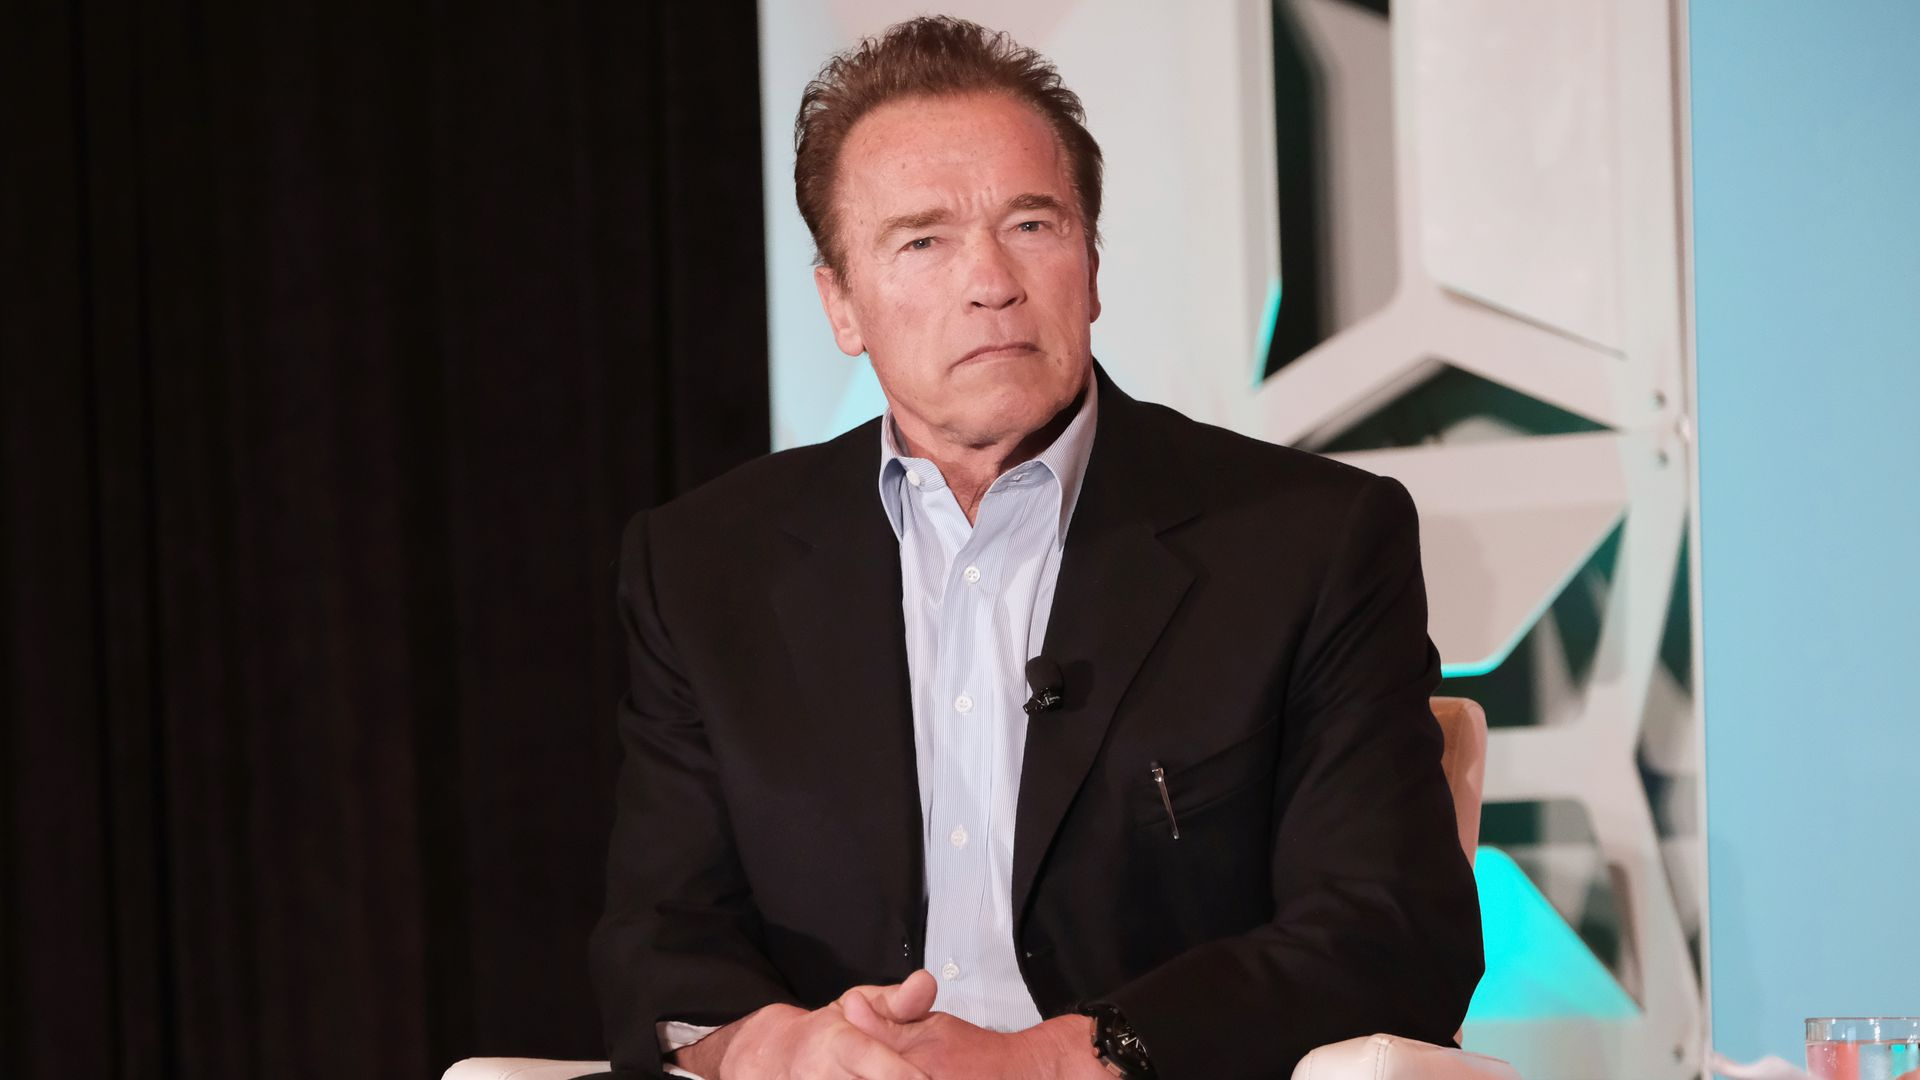 Arnold Schwarzenegger sitting down in a while chair with a serious expression